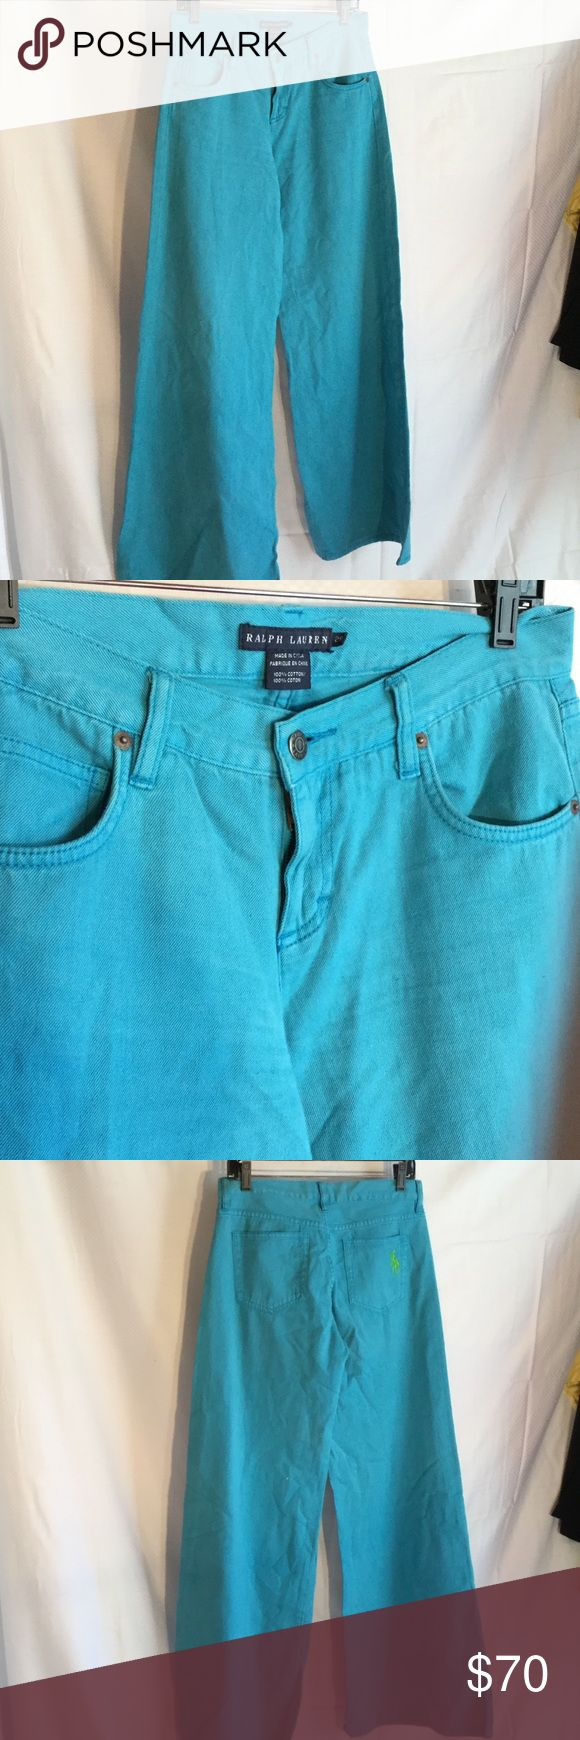 Ralph Lauren turquoise wide leg jean 28 never worn Ralph Lauren wide leg turquoise jeans with wide leg and large back pocket hoarse signature logo detail in lime green. Very cute jean for summer with a long inseam of 33.5 for tall ladies . Very cute and never worn Ralph Lauren Jeans Flare & Wide Leg